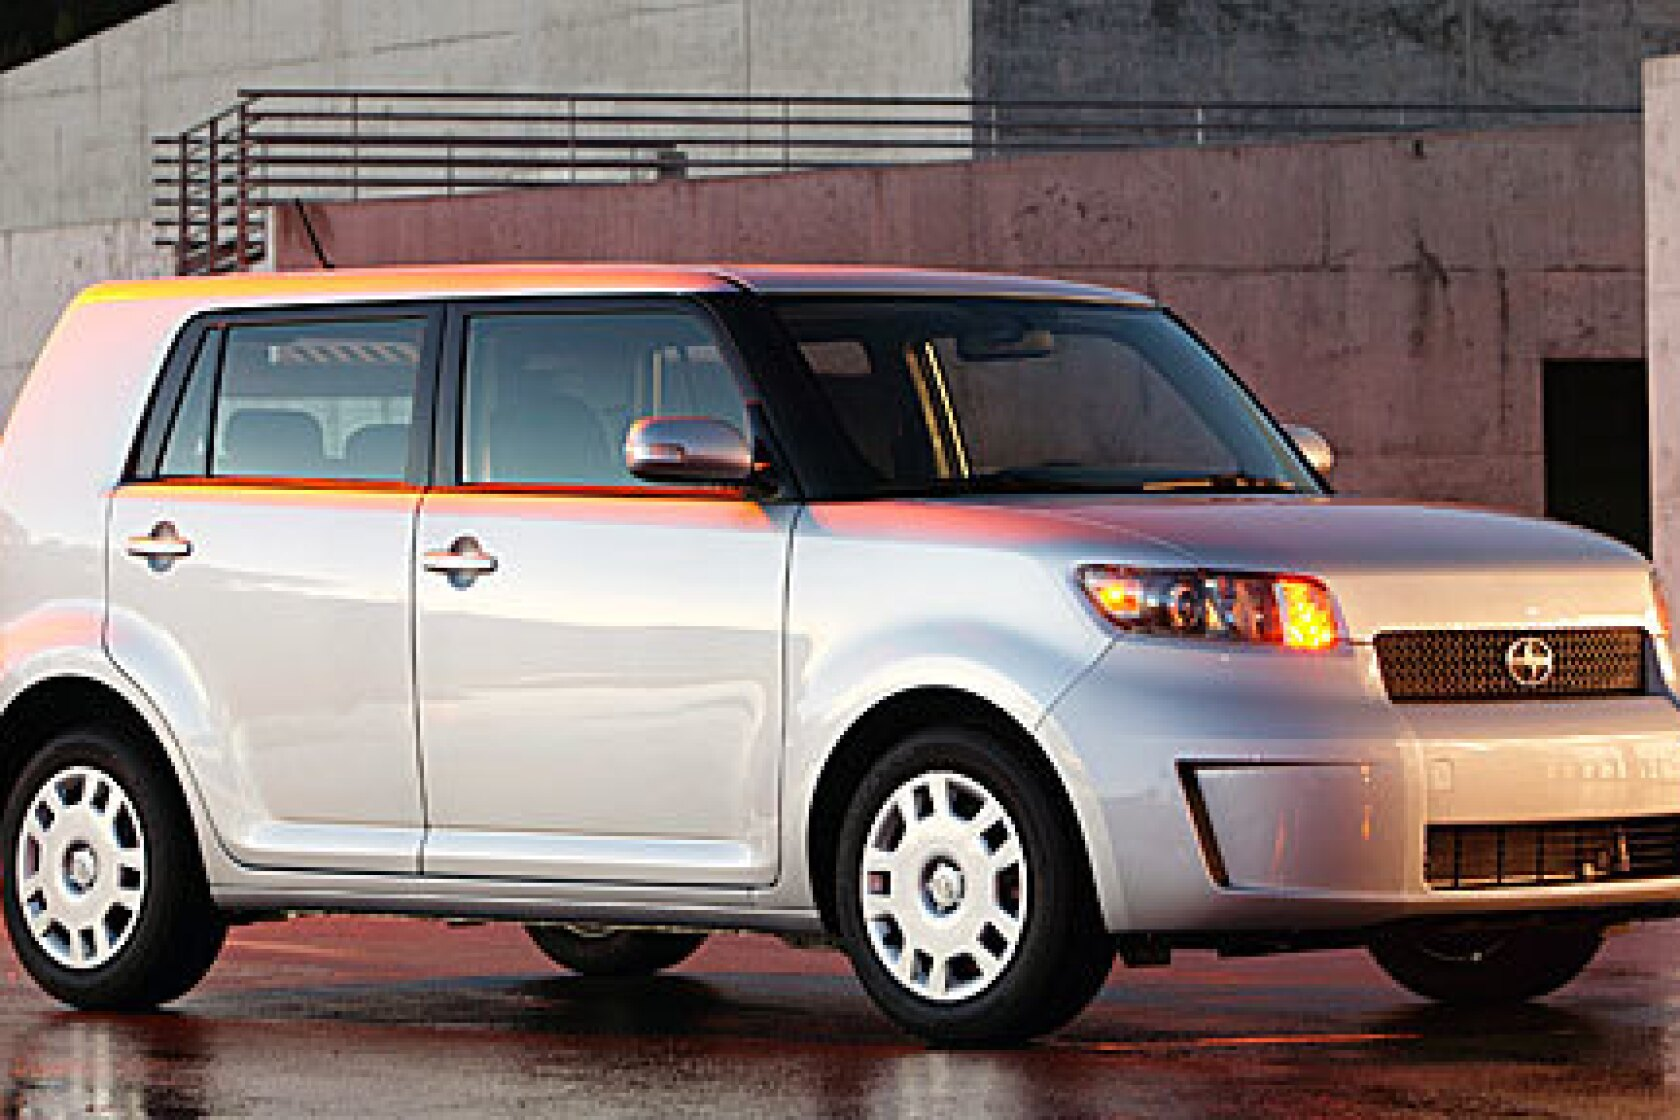 Honda Element And Scion XB Will Not Be Released Anytime Soon >> 2008 Scion Xb Boxy Trumps Foxy Los Angeles Times